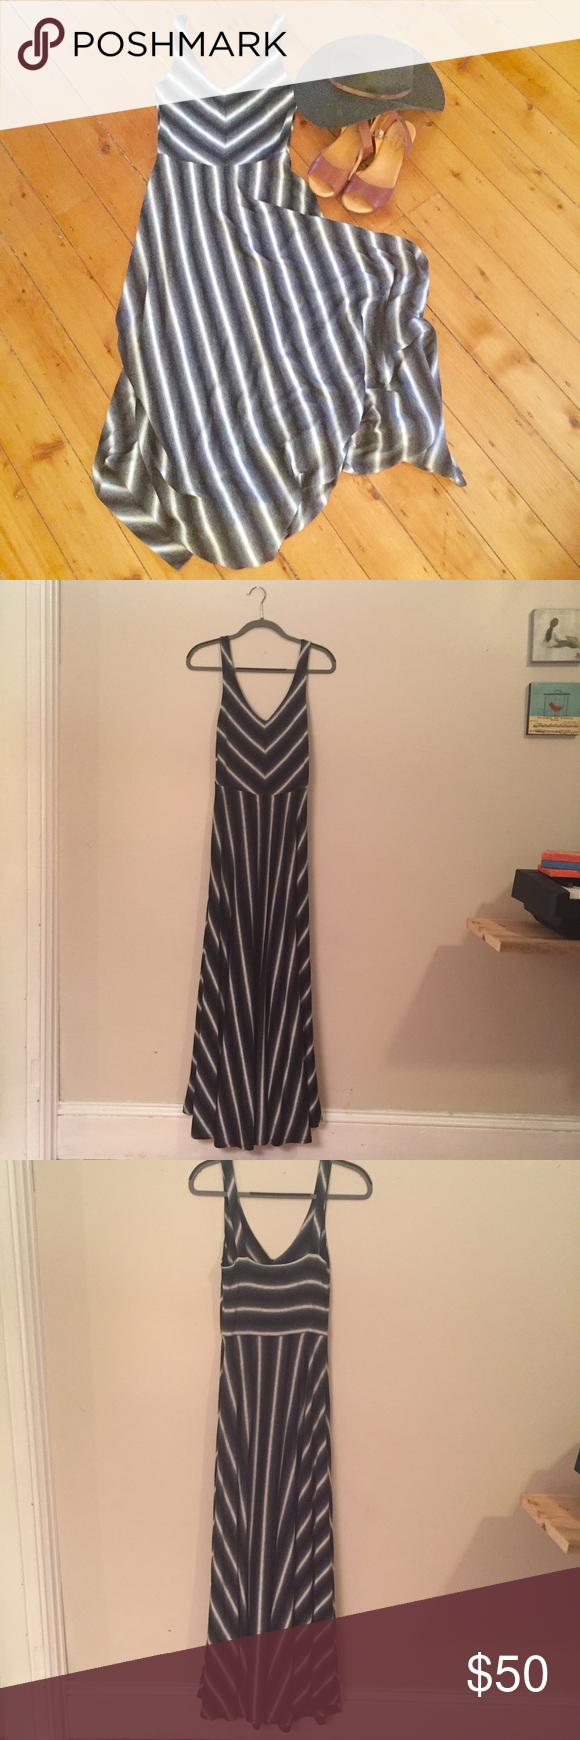 Puella Tasmin Striped Maxi Dress Anthropologie Puella Tasmin maxi dress from Anthropologie. Grey, black and white vertical stripes on skirt, and striped V pattern on bodice. This dress is super flattering and comfortable! Great condition. Looks great with platform sandals (pictured pair available for sale). Size Small. Anthropologie Dresses Maxi